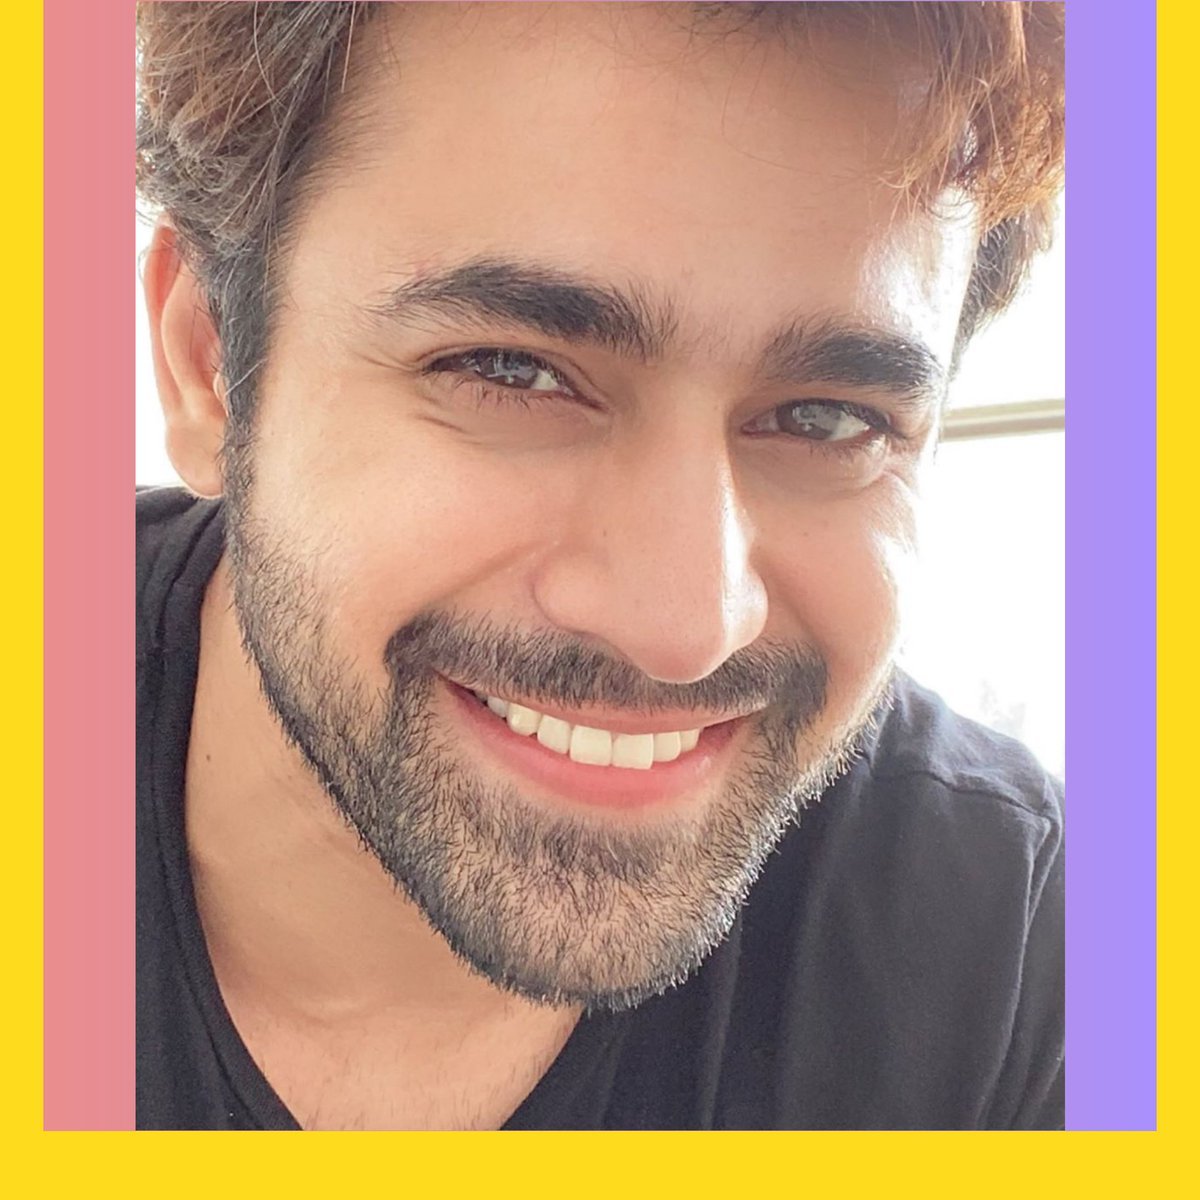 .@pearlvpuri is all smiling and he looks   #PearlVPuri #Tellywood #PopDiariespic.twitter.com/aHHWNT5TOa